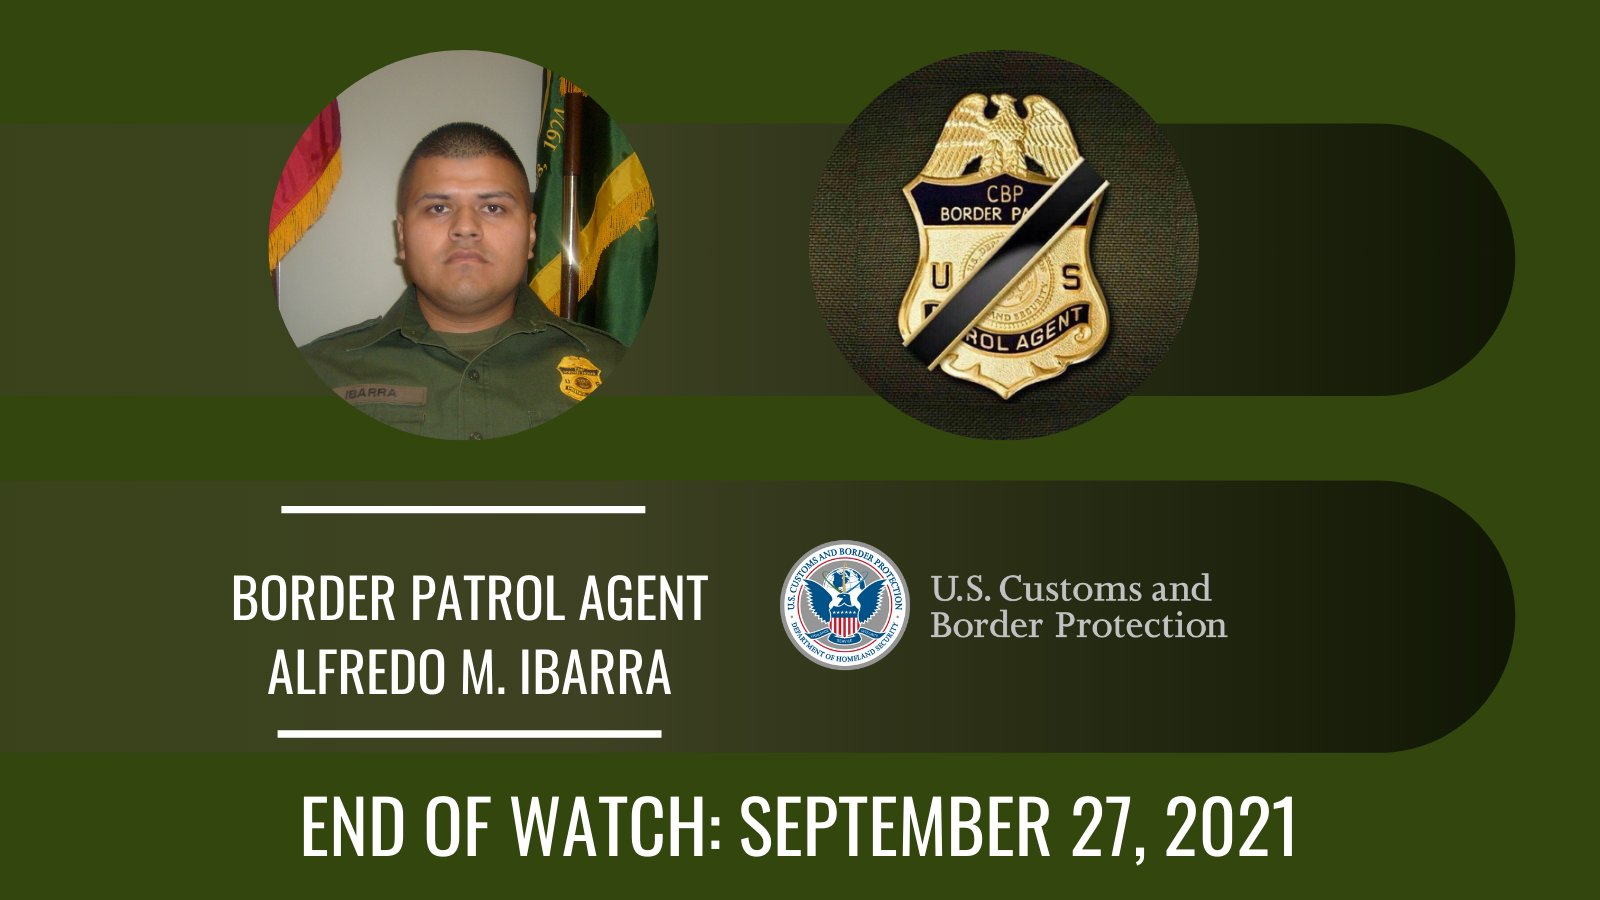 Border Patrol Agent Alfredo M. Ibarra | United States Department of Homeland Security - Customs and Border Protection - United States Border Patrol, U.S. Government